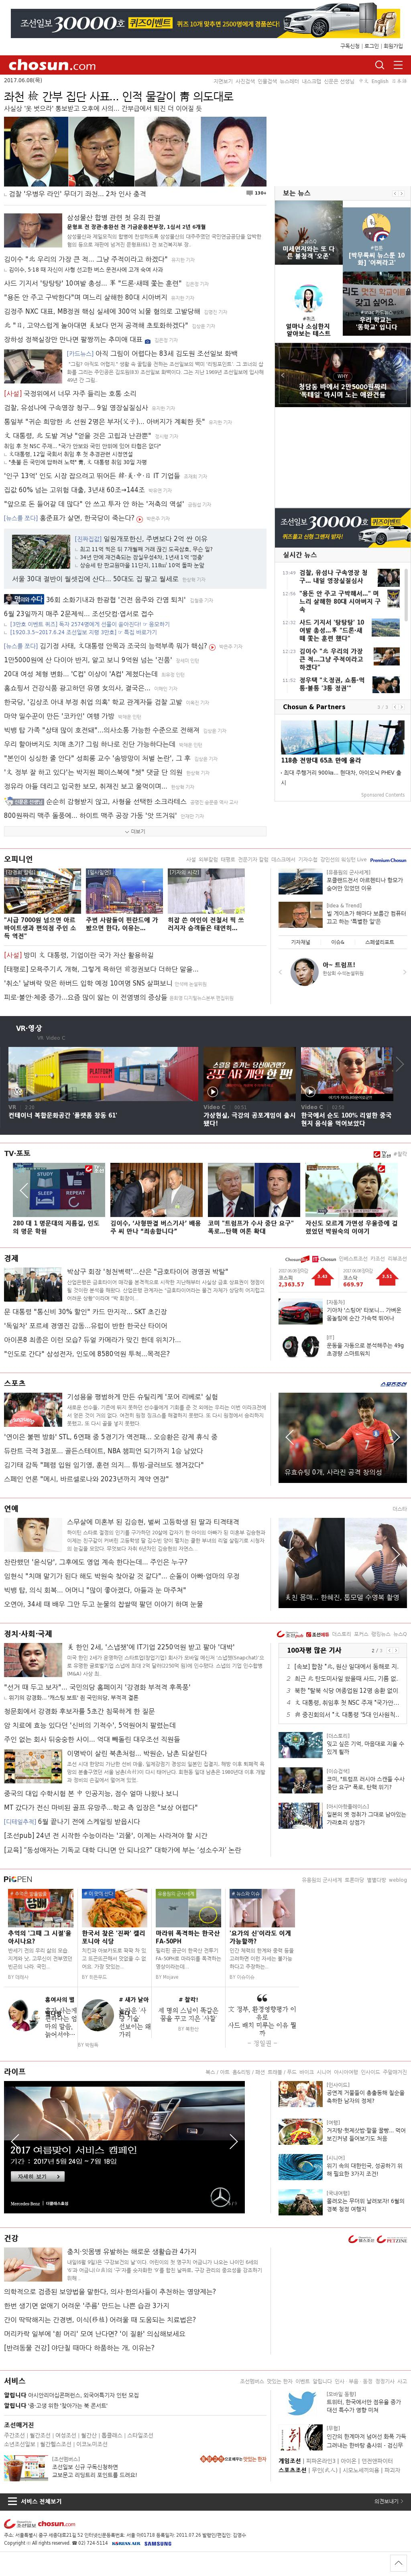 chosun.com at Thursday June 8, 2017, 2:04 p.m. UTC